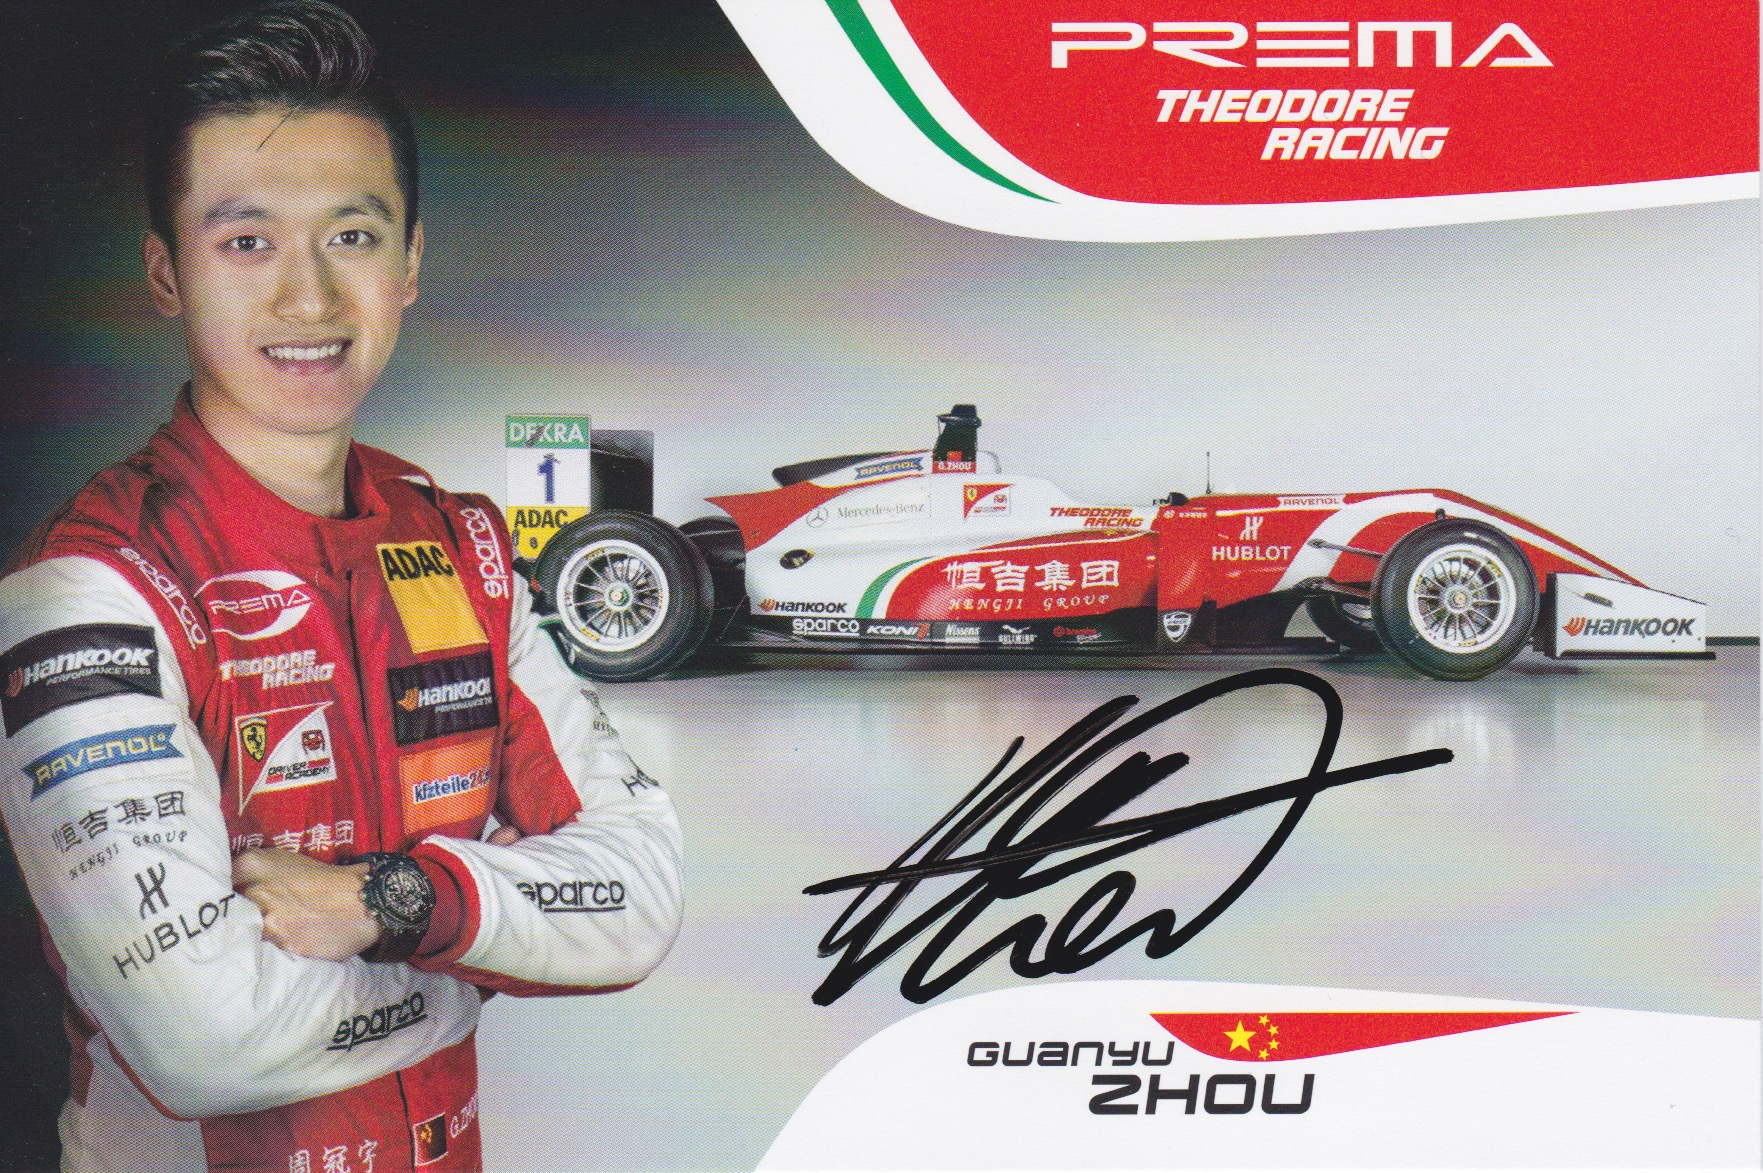 Guanyu Zhou Prema Powerteam 2018